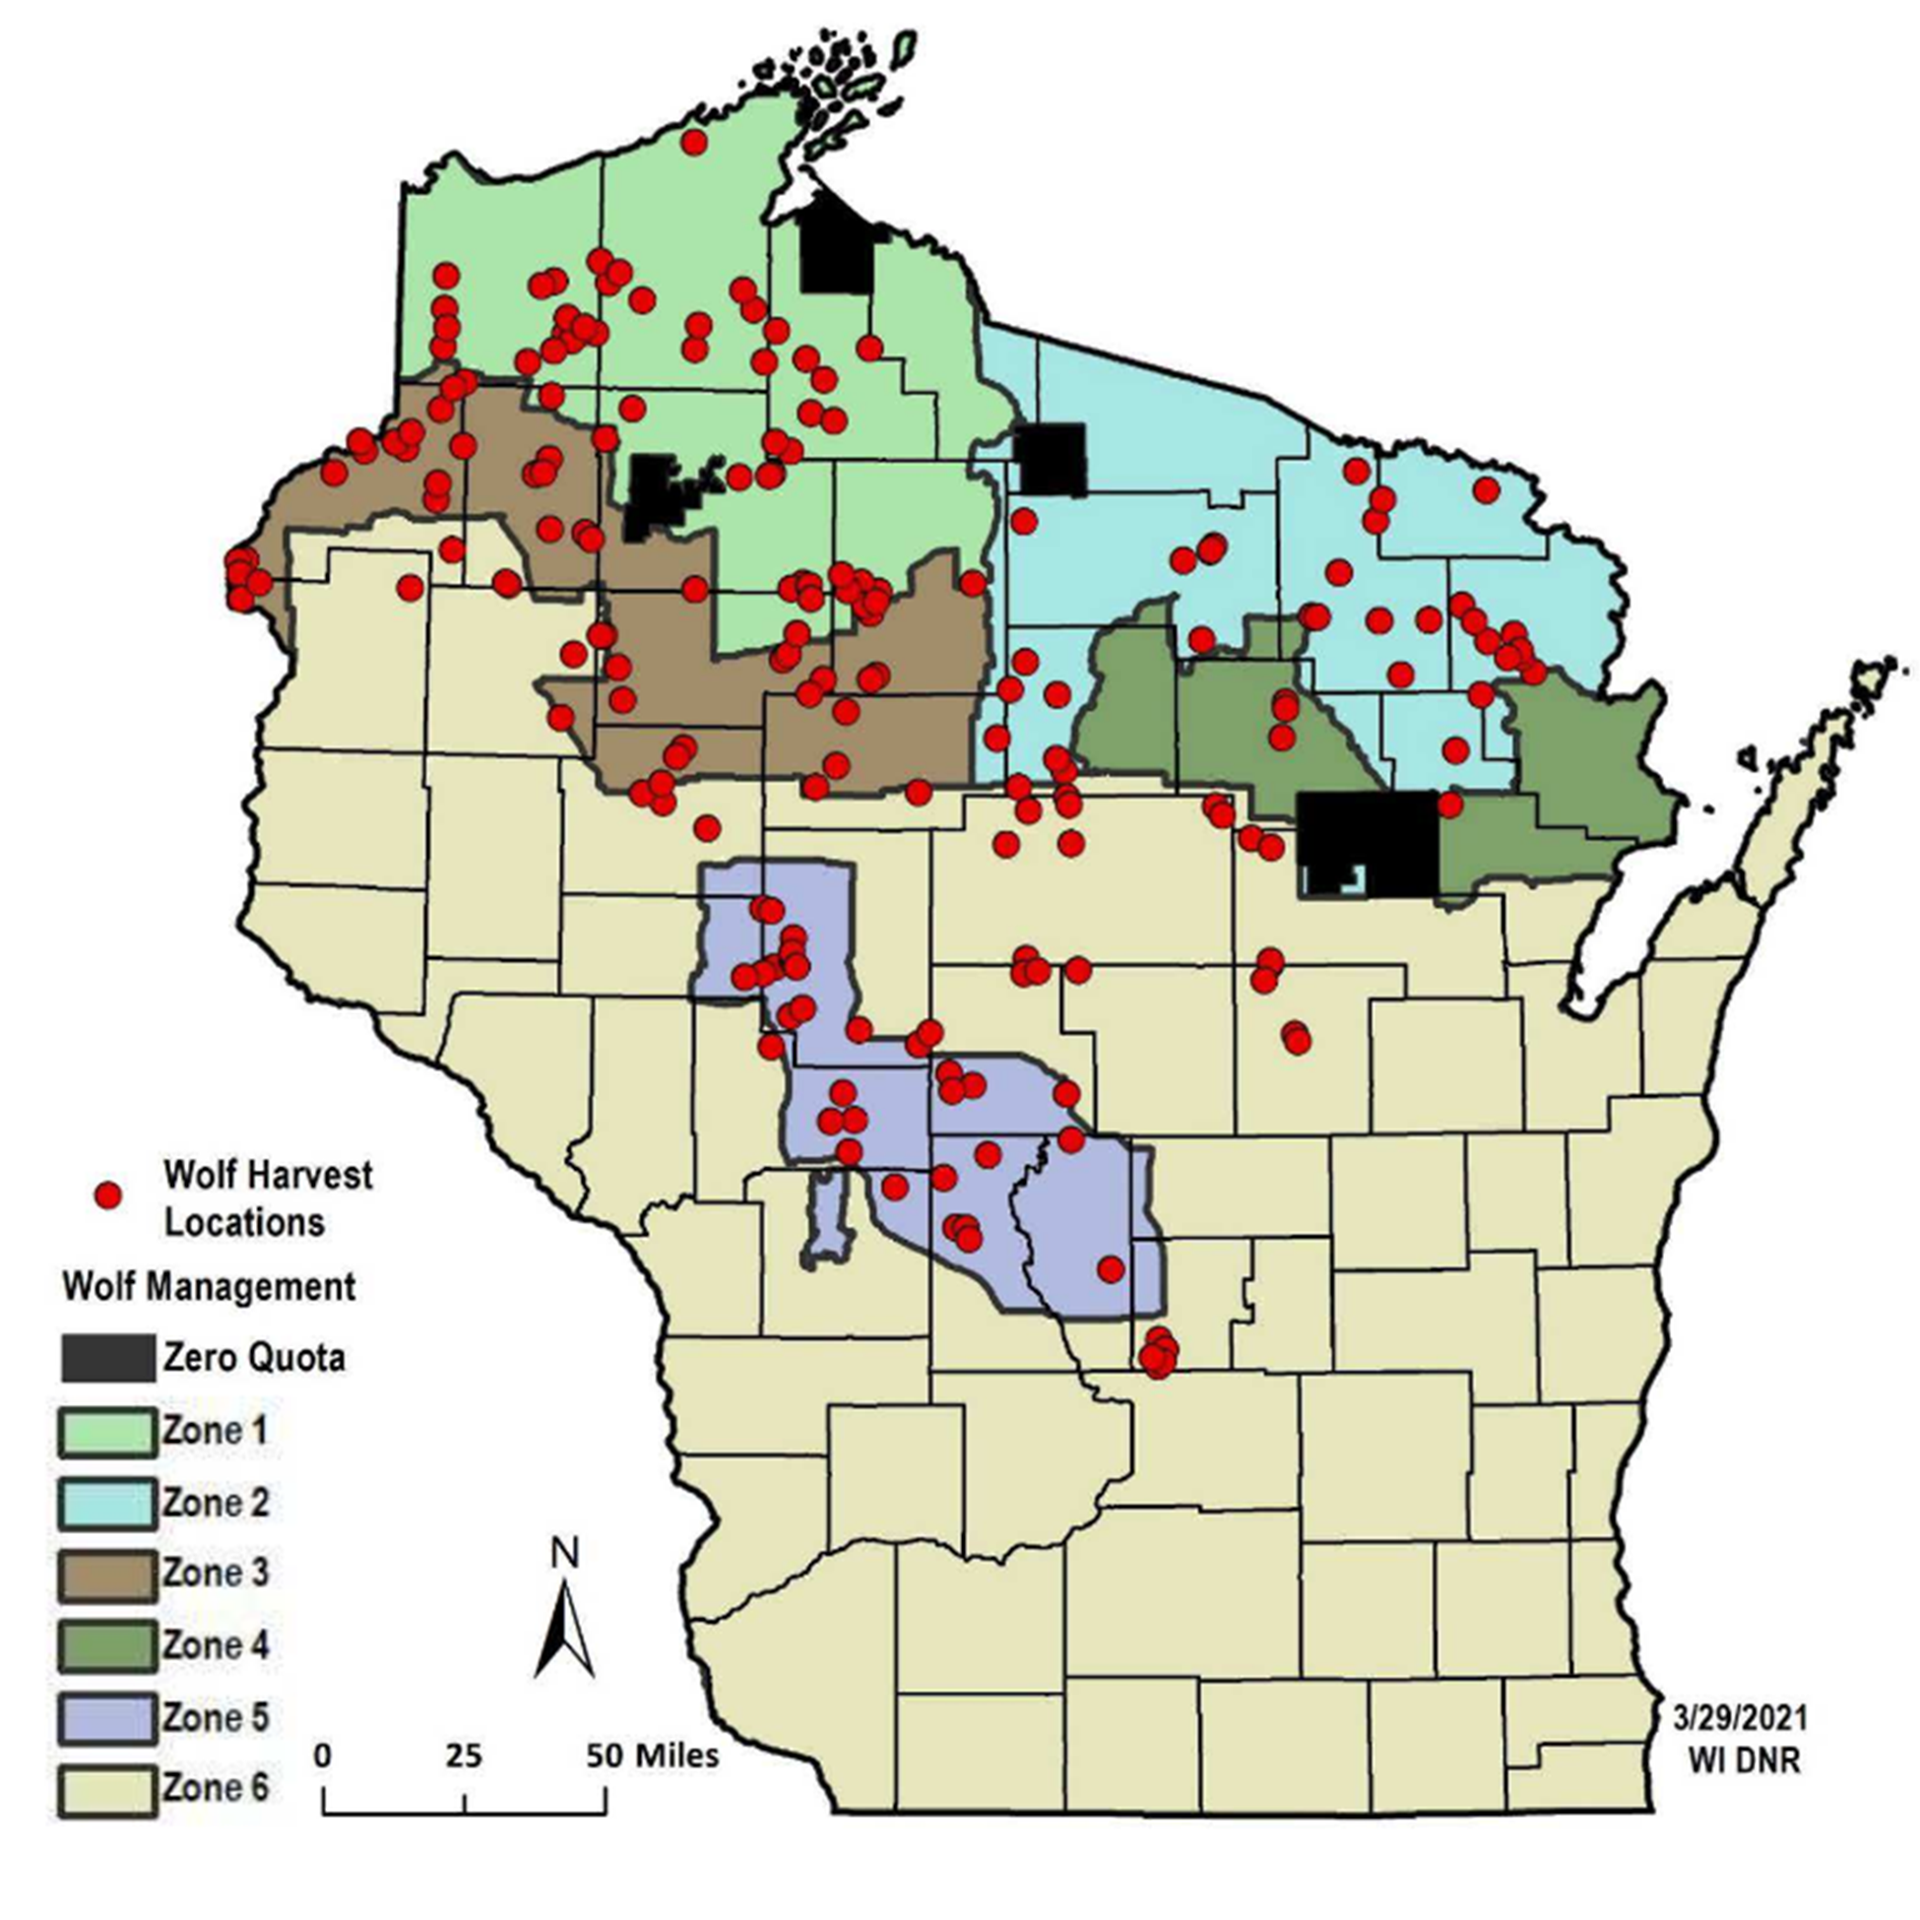 A map of Wisconsin's wolf management zones showing the sites where wolves were killed during the February 2021 wolf hunt.